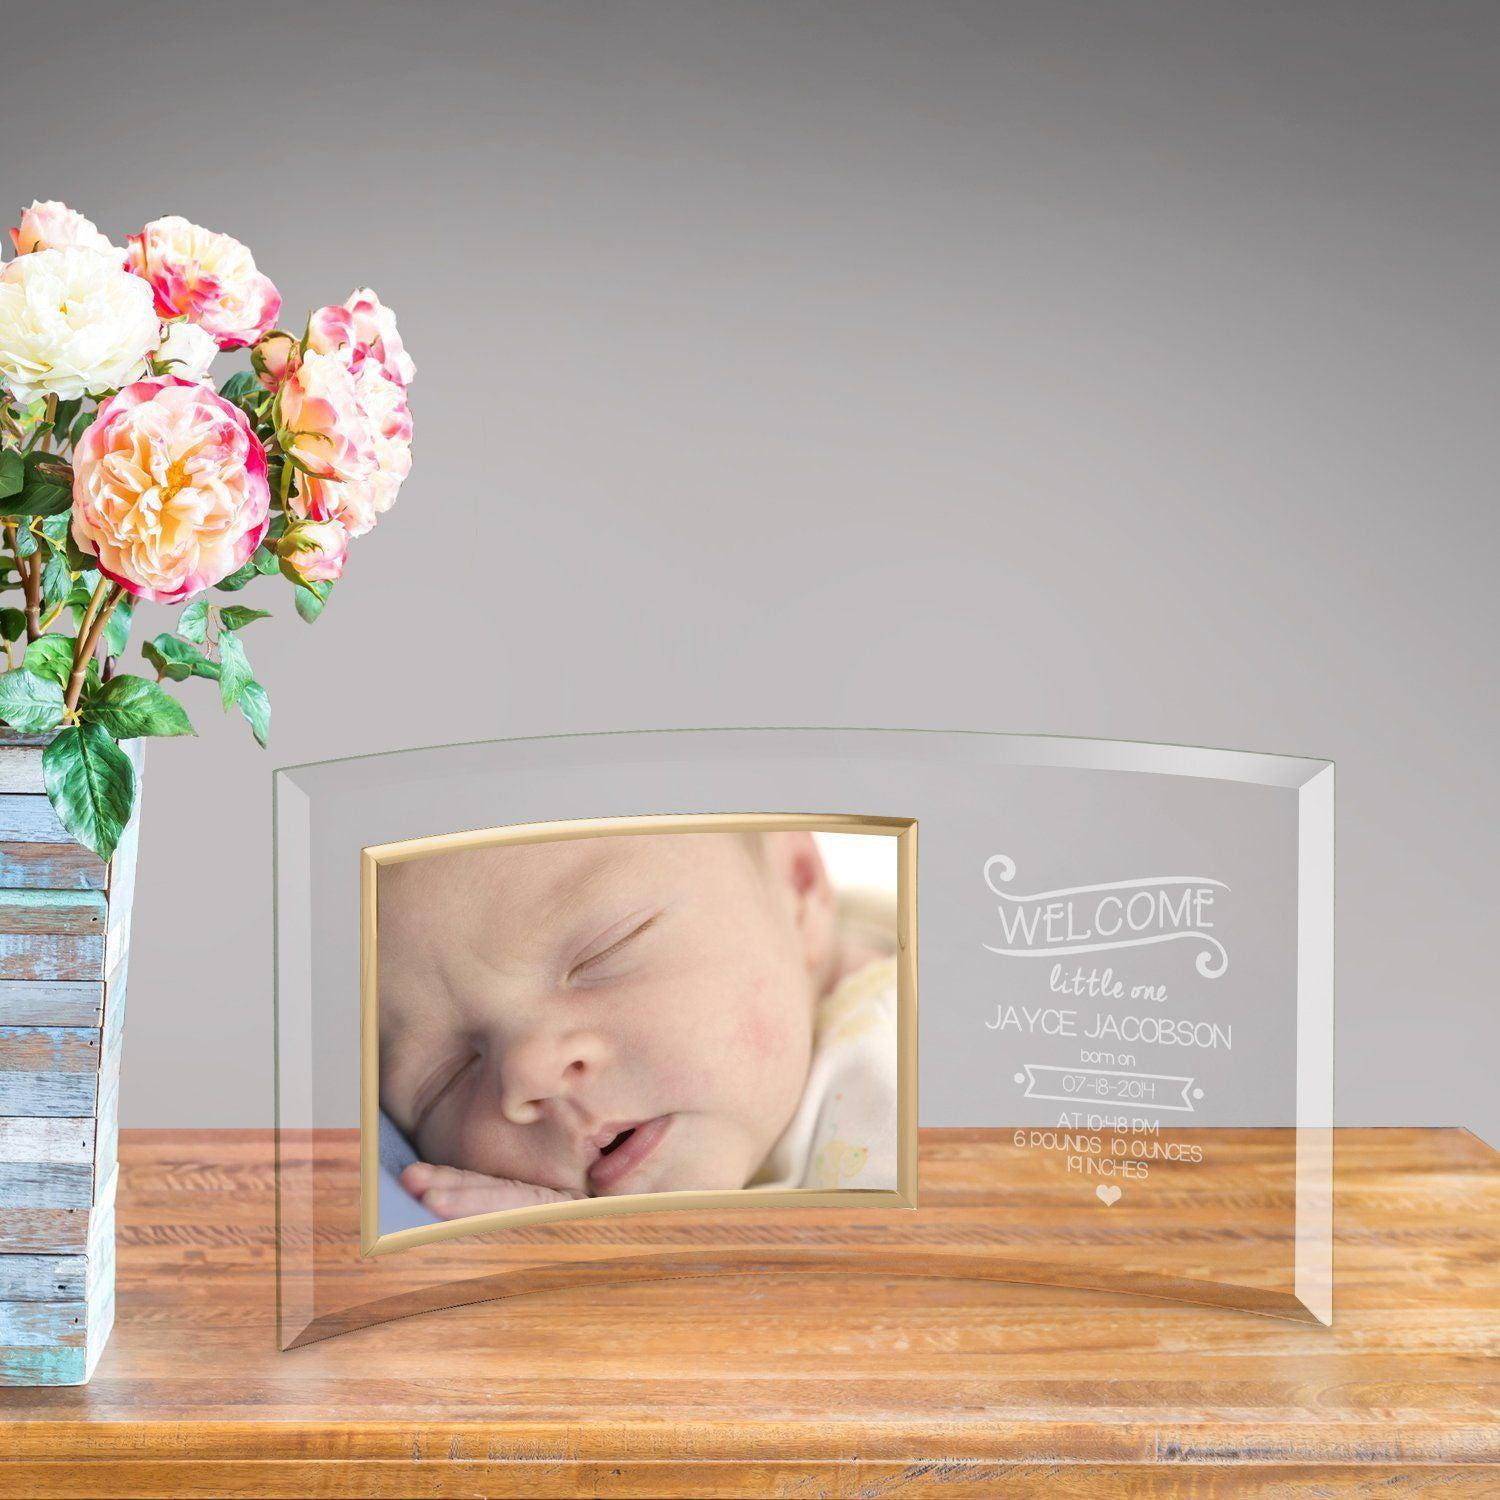 Personalized Welcome Baby Glass Photo Frame